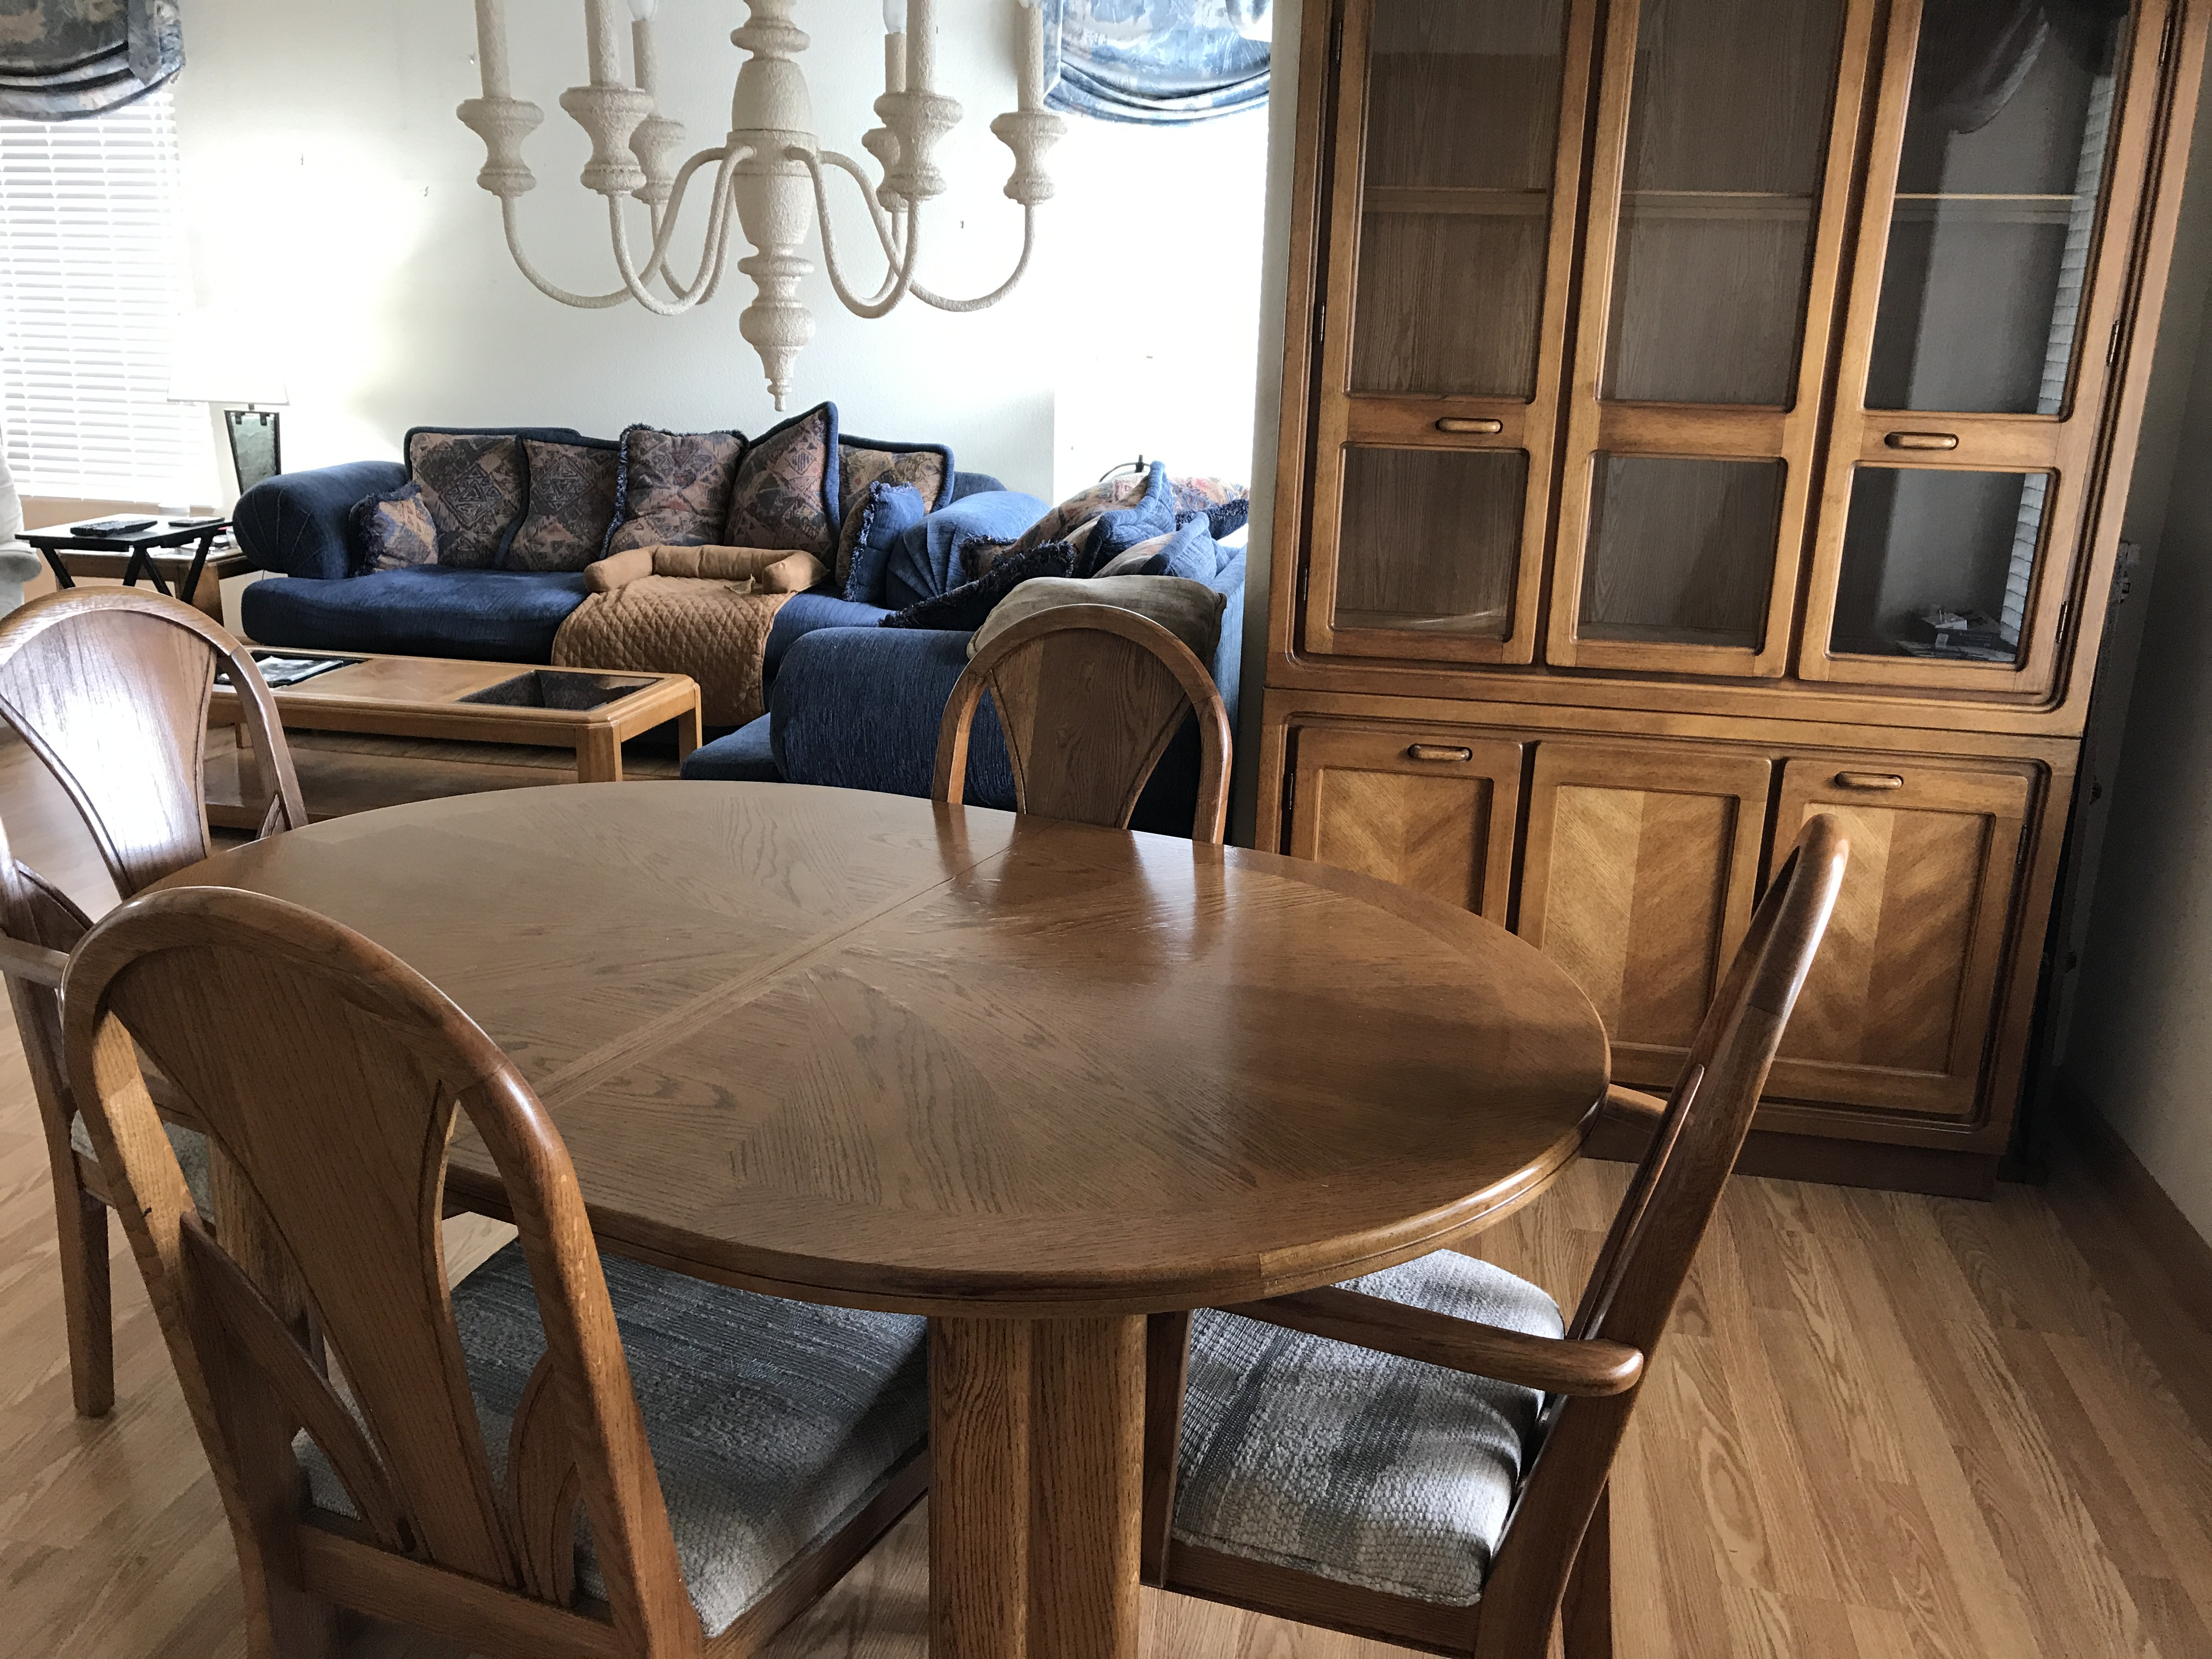 Moving Sale/Yard Sale - Everything Must Go!